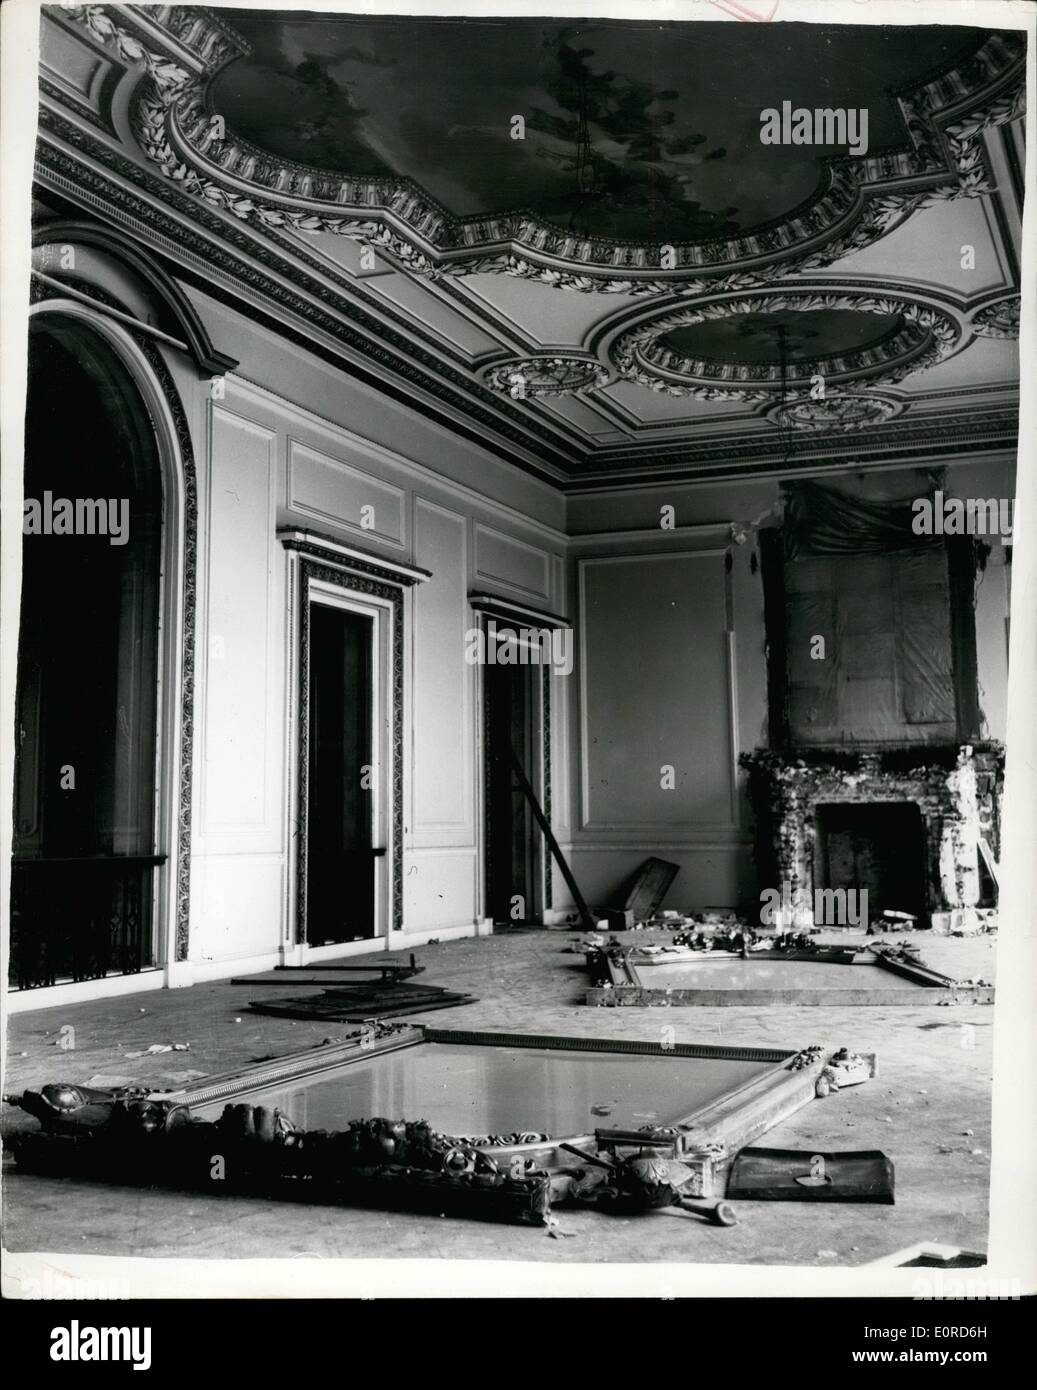 Mar. 03, 1959 - Home Of Baron De Rothschild Being Demolished.:Photo shows view inside of the rooms of the massive Stock Photo